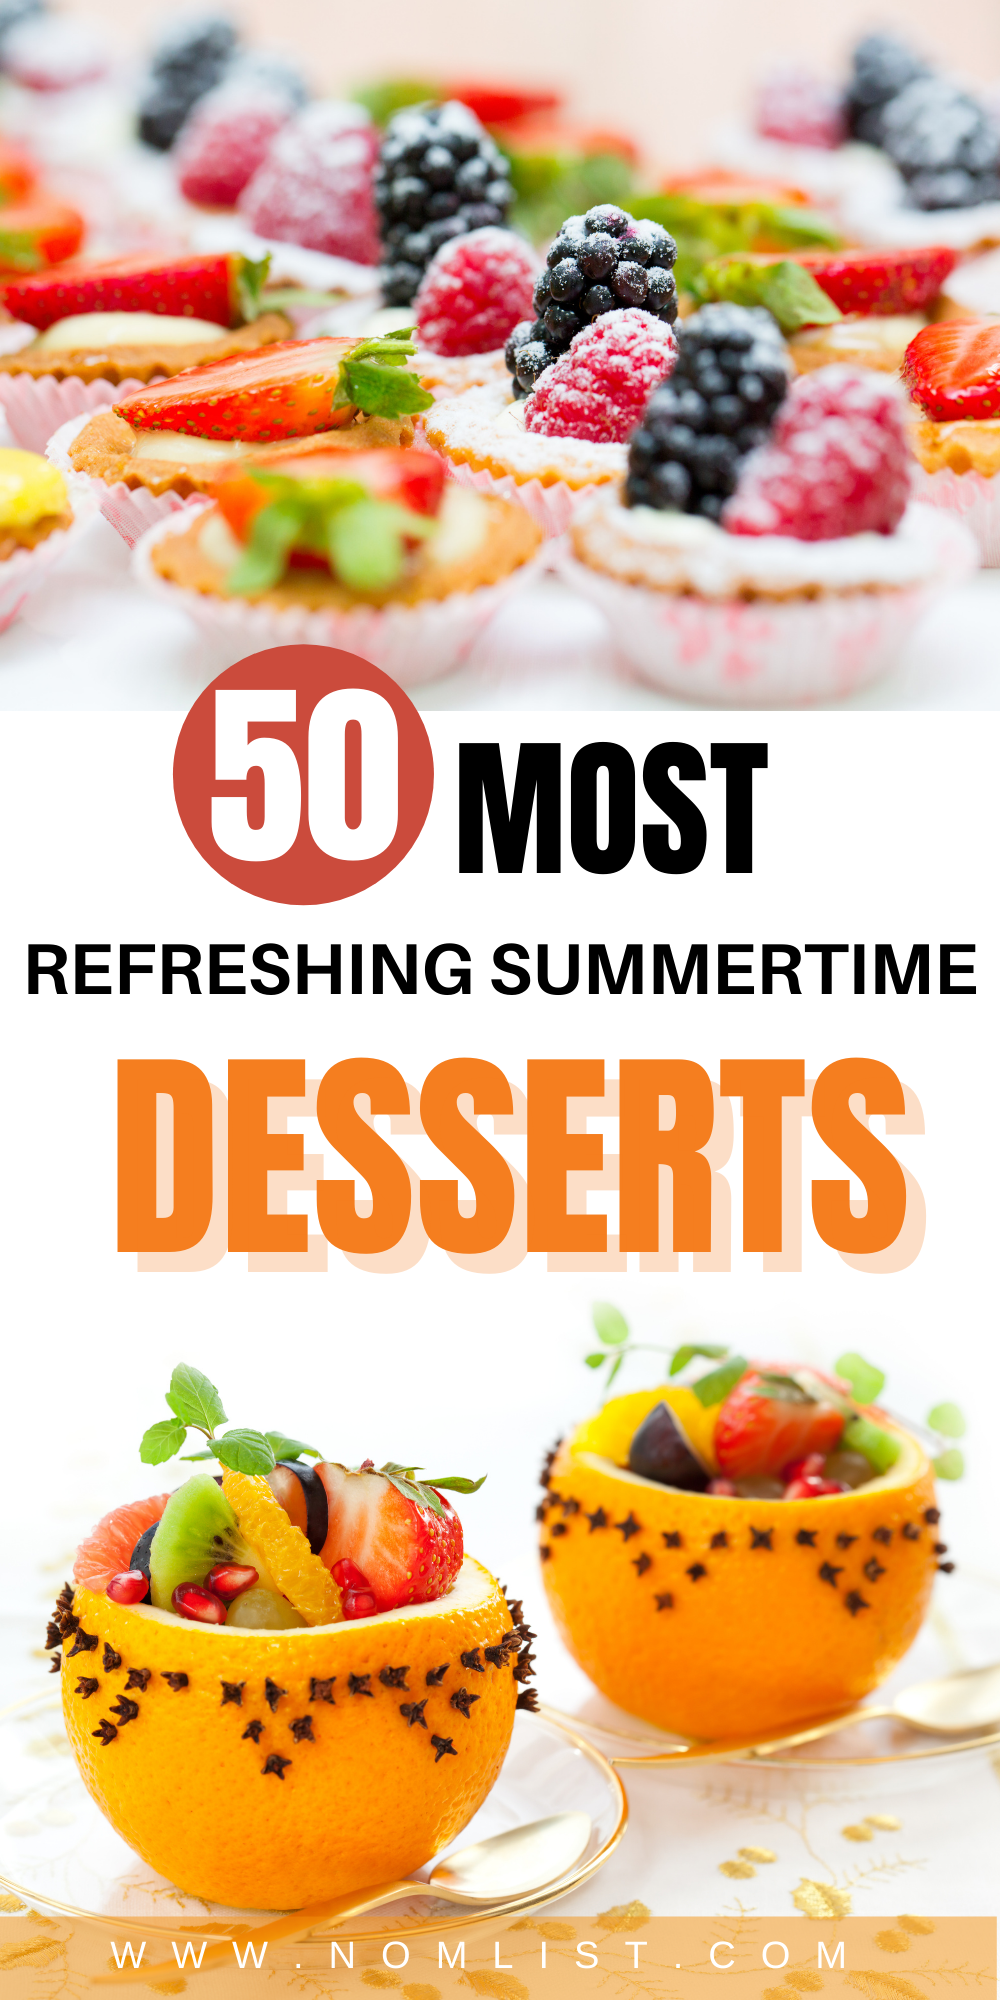 Summer is here, and there's no better way to celebrate your summer bod with a refreshing treat. These are the best refreshing summertime desserts that you will love and your body will love you for.